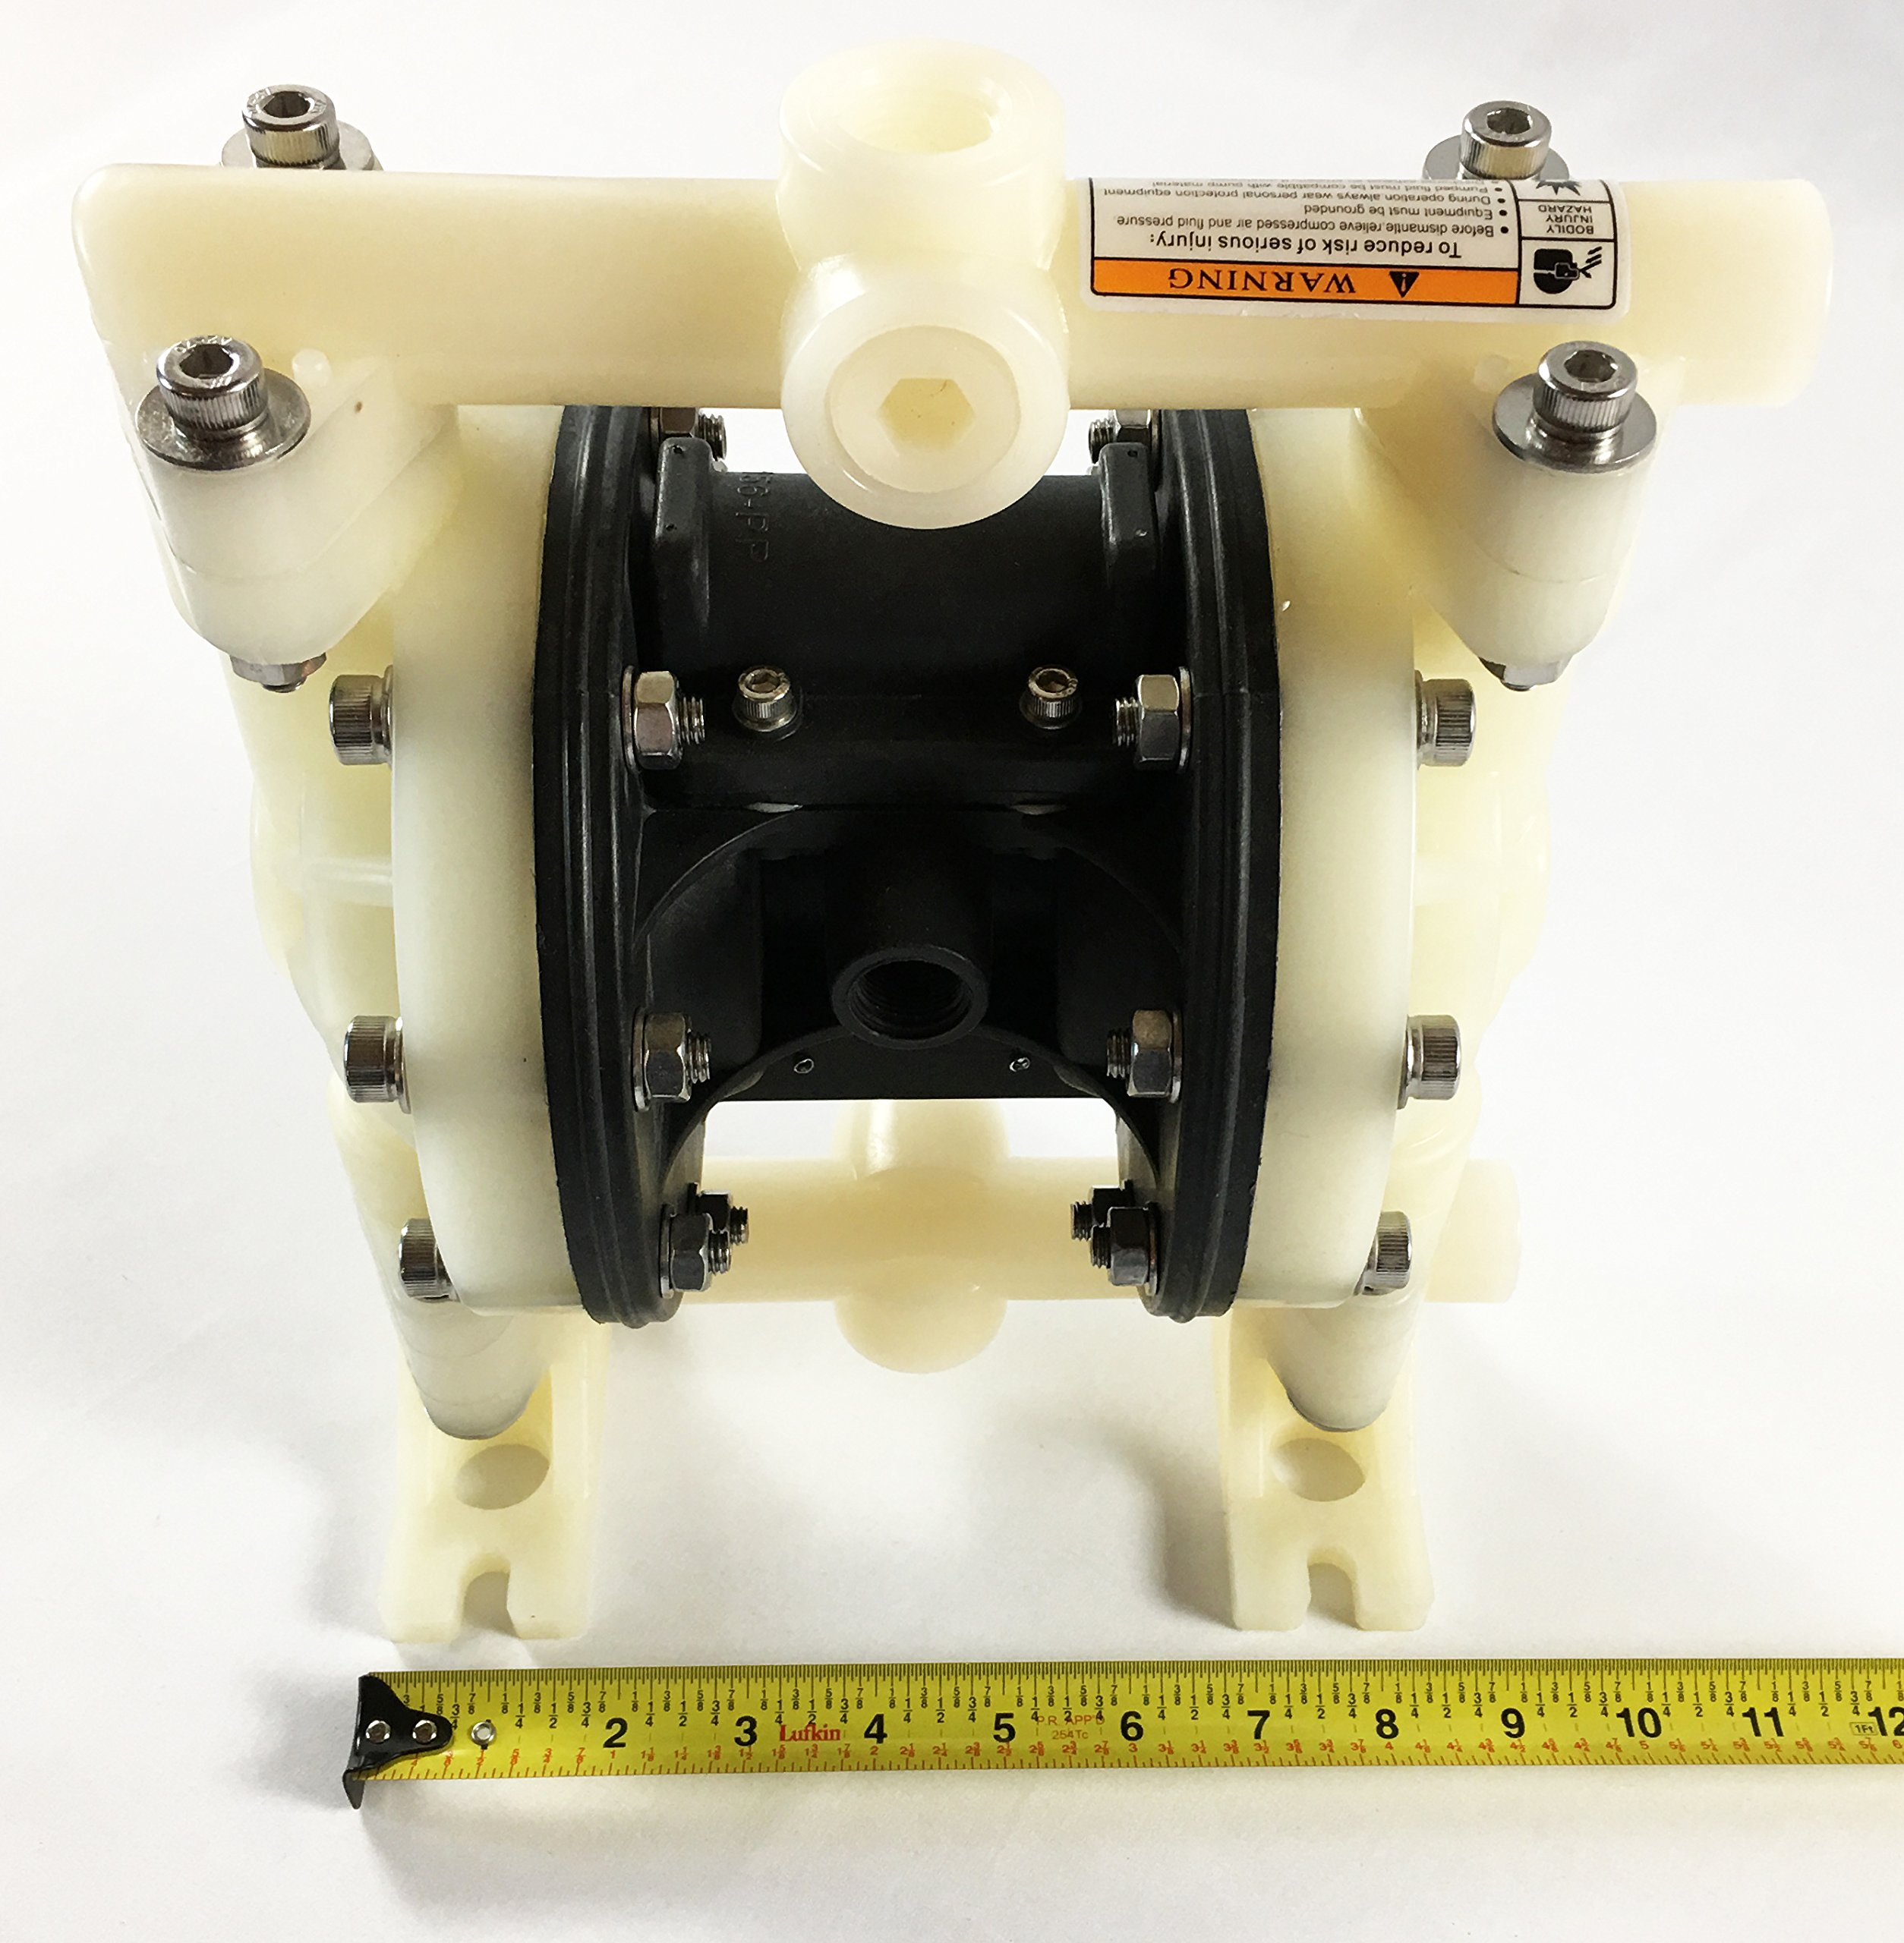 Double Diaphragm Air Pump PII.50 Chemical Industrial Polypropylene 1/2'' or 3/4'' NPT Inlet / Outlet by Plating International (Image #6)